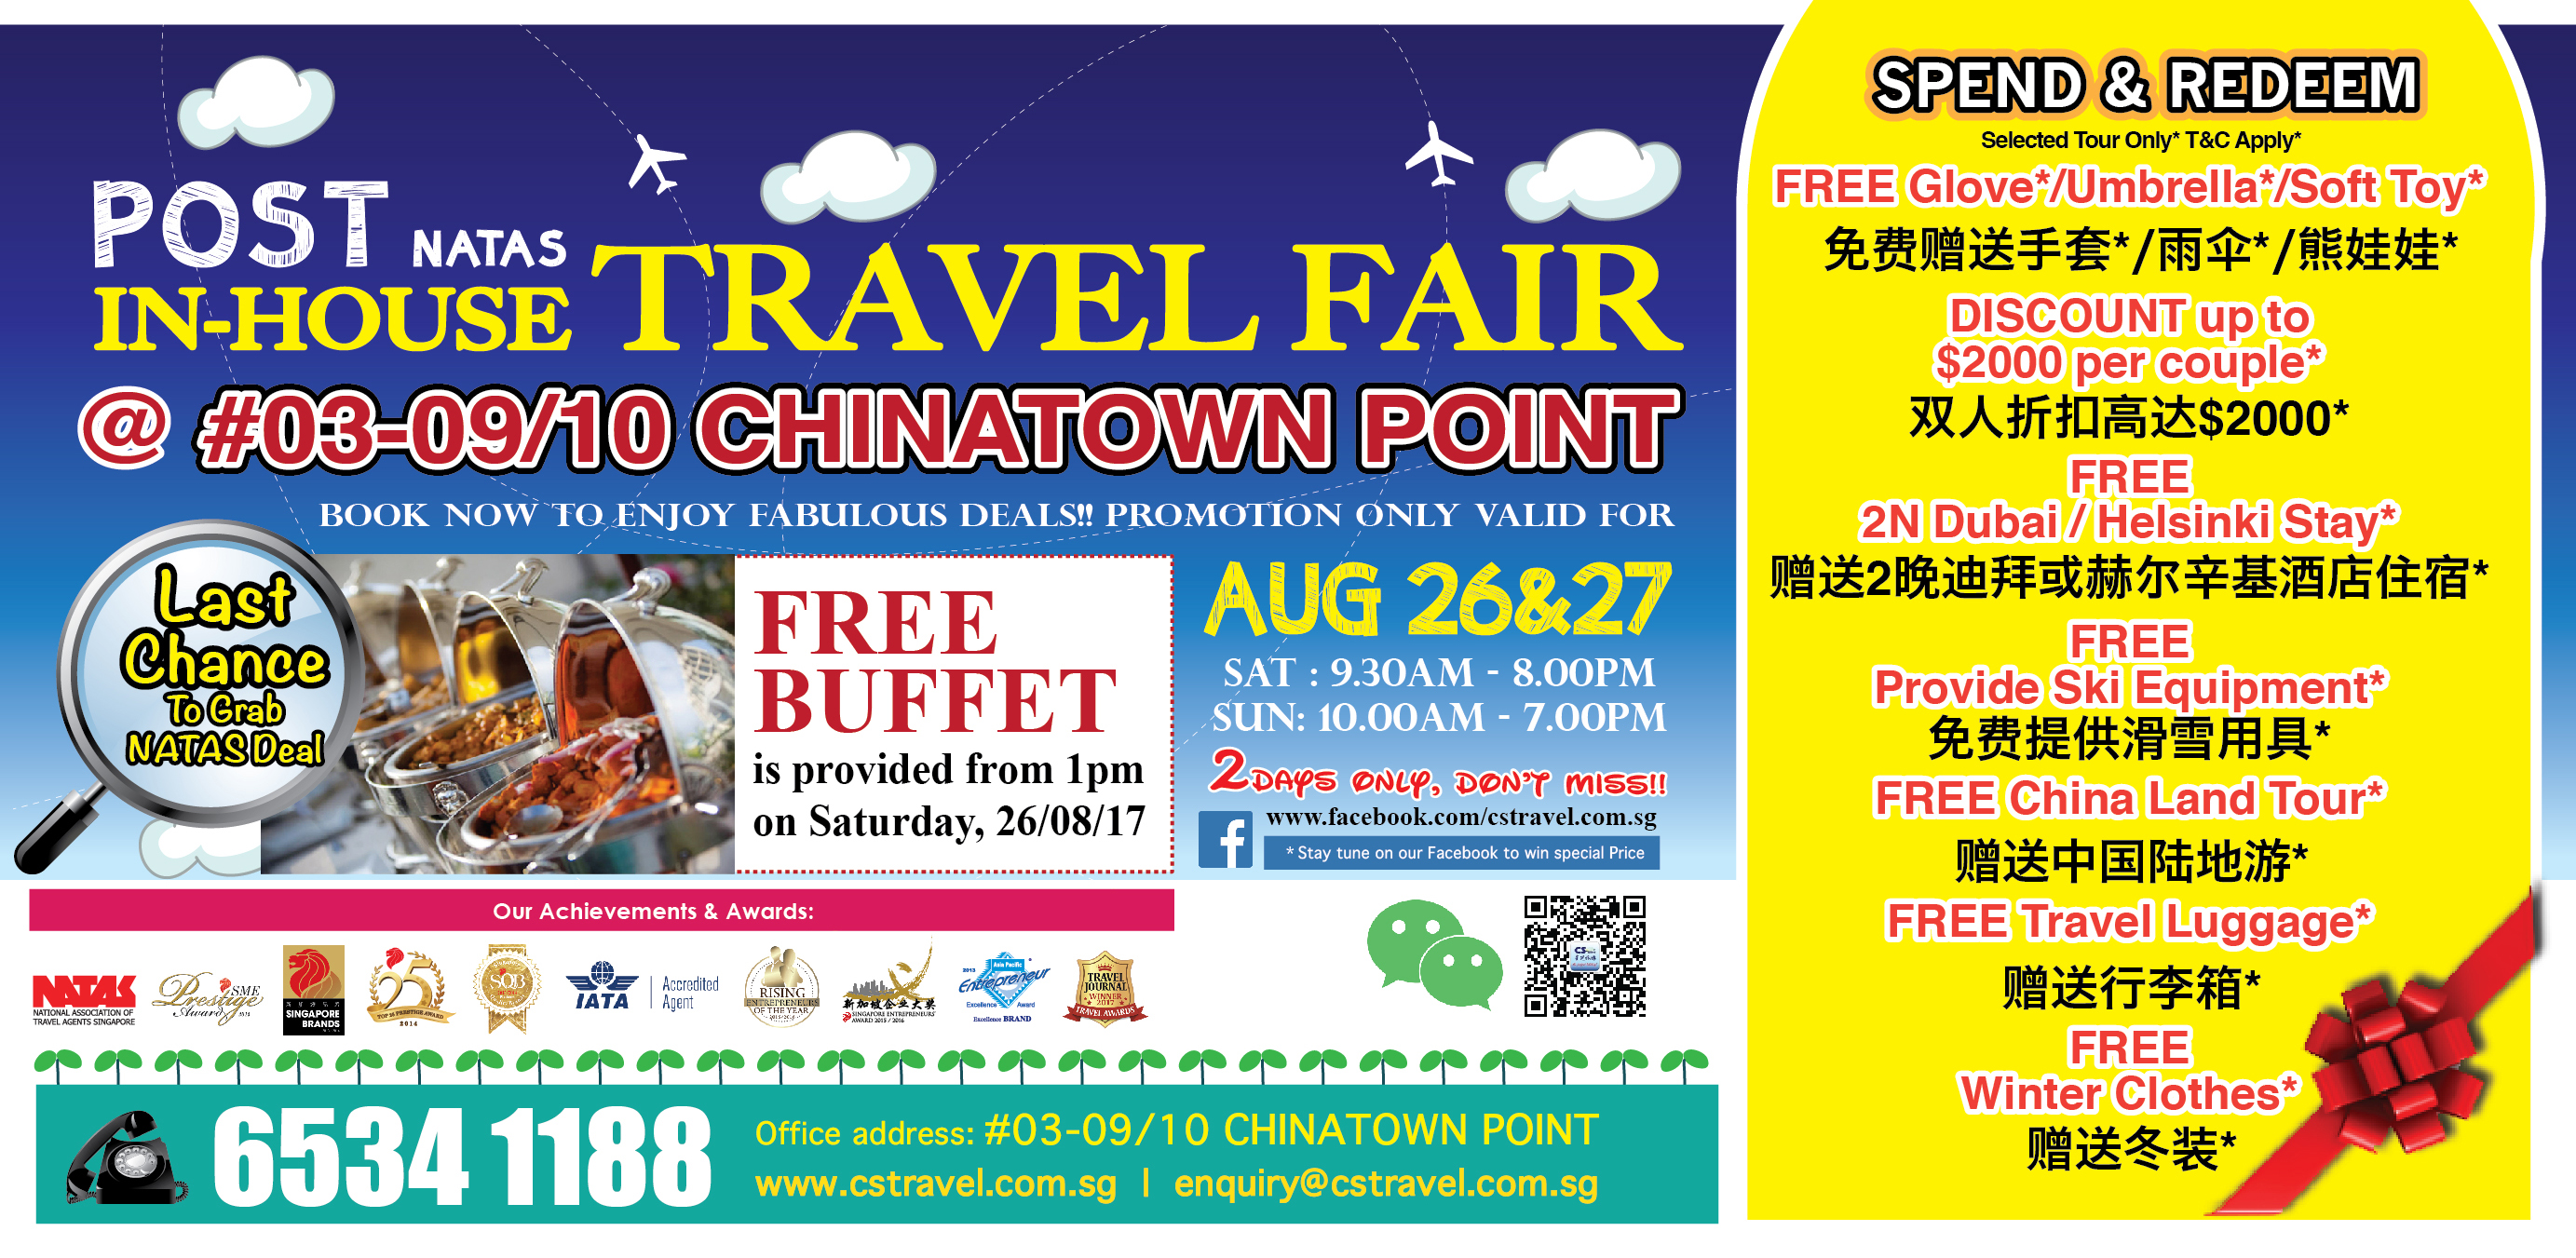 CS Travel - Post NATAS In-House Travel Fair